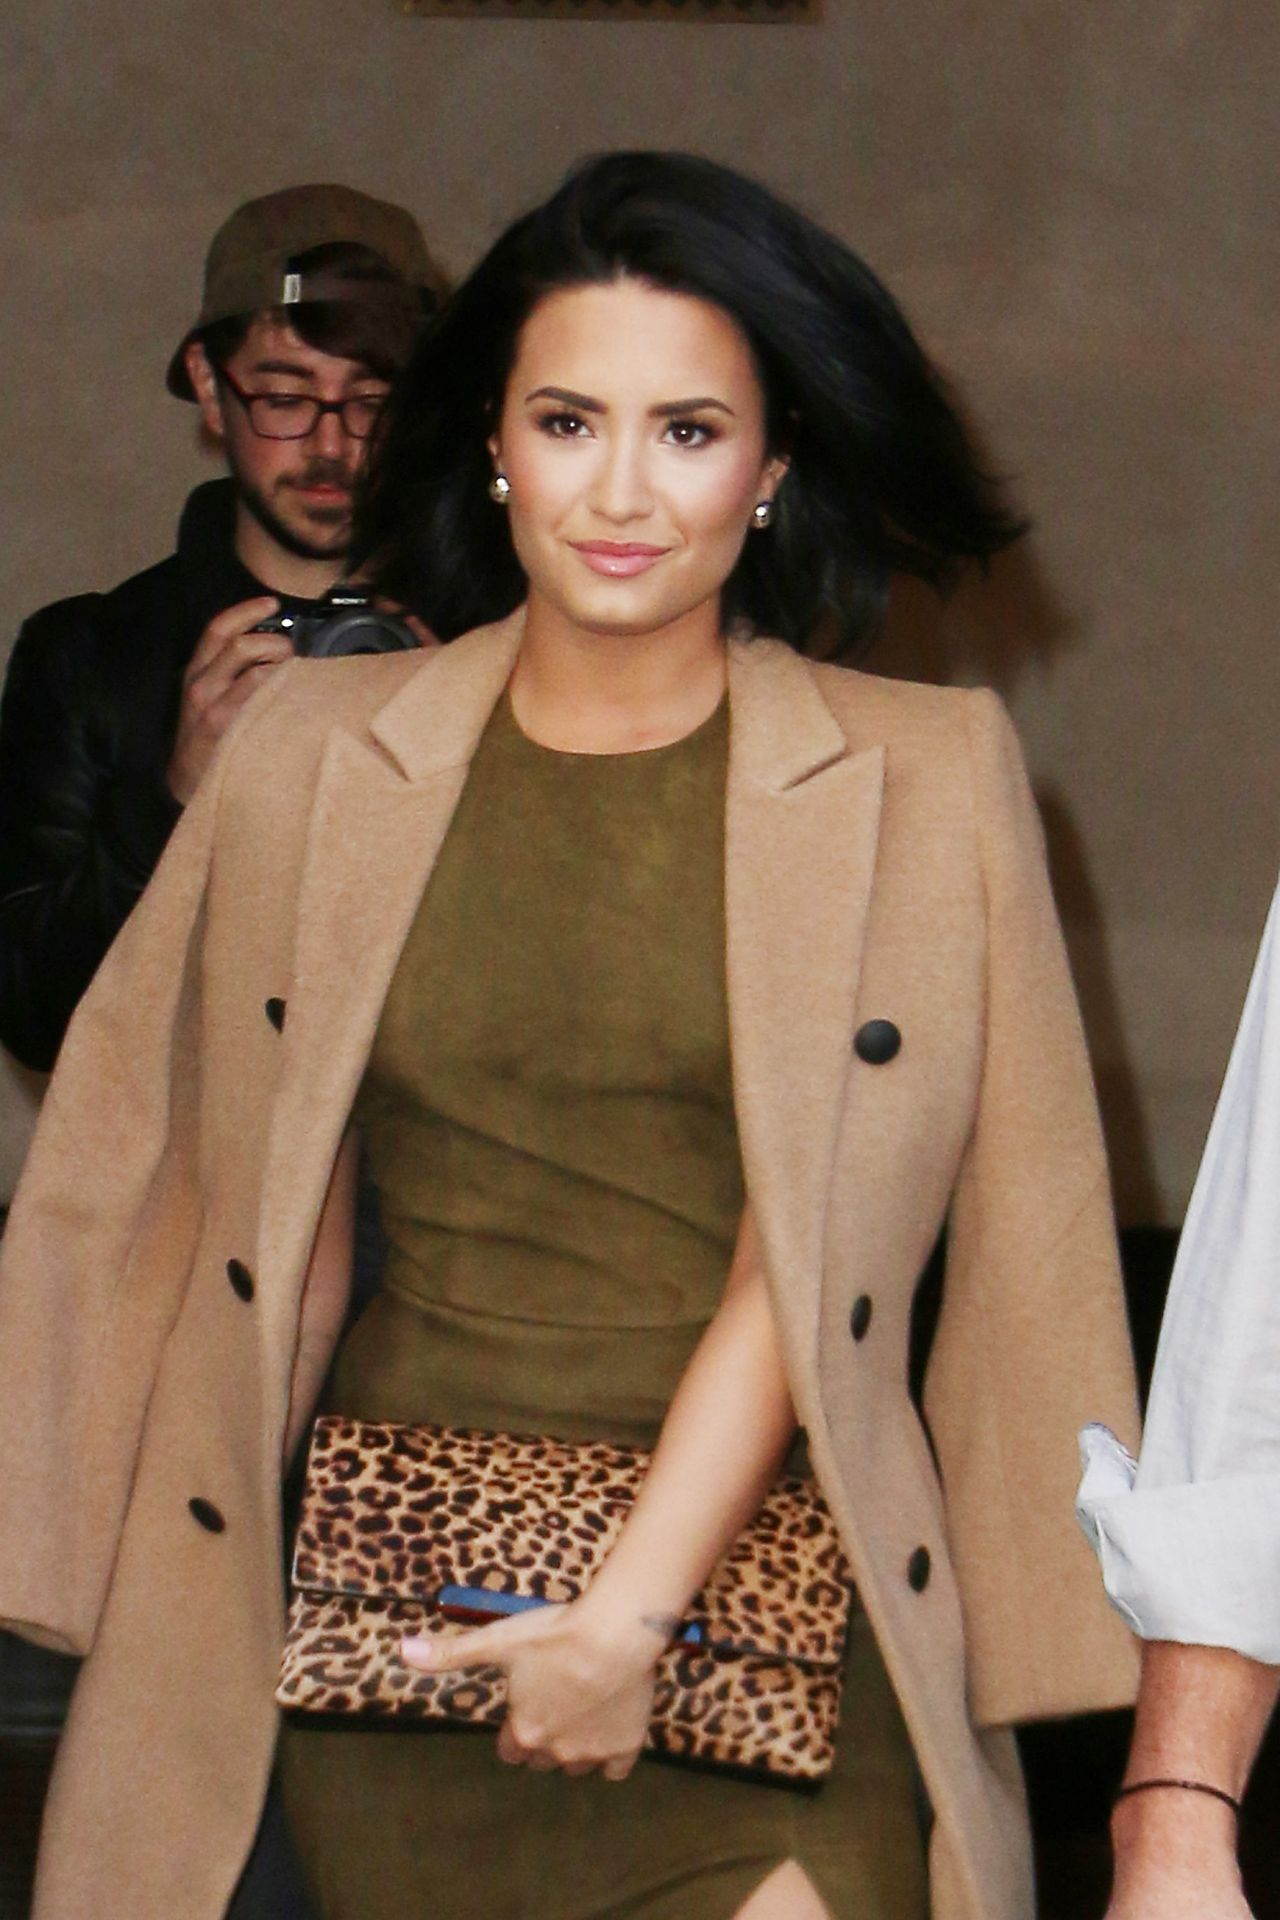 demi-lovato-leaving-the-greenwhich-hotel-in-new-york-city-october-2015_2